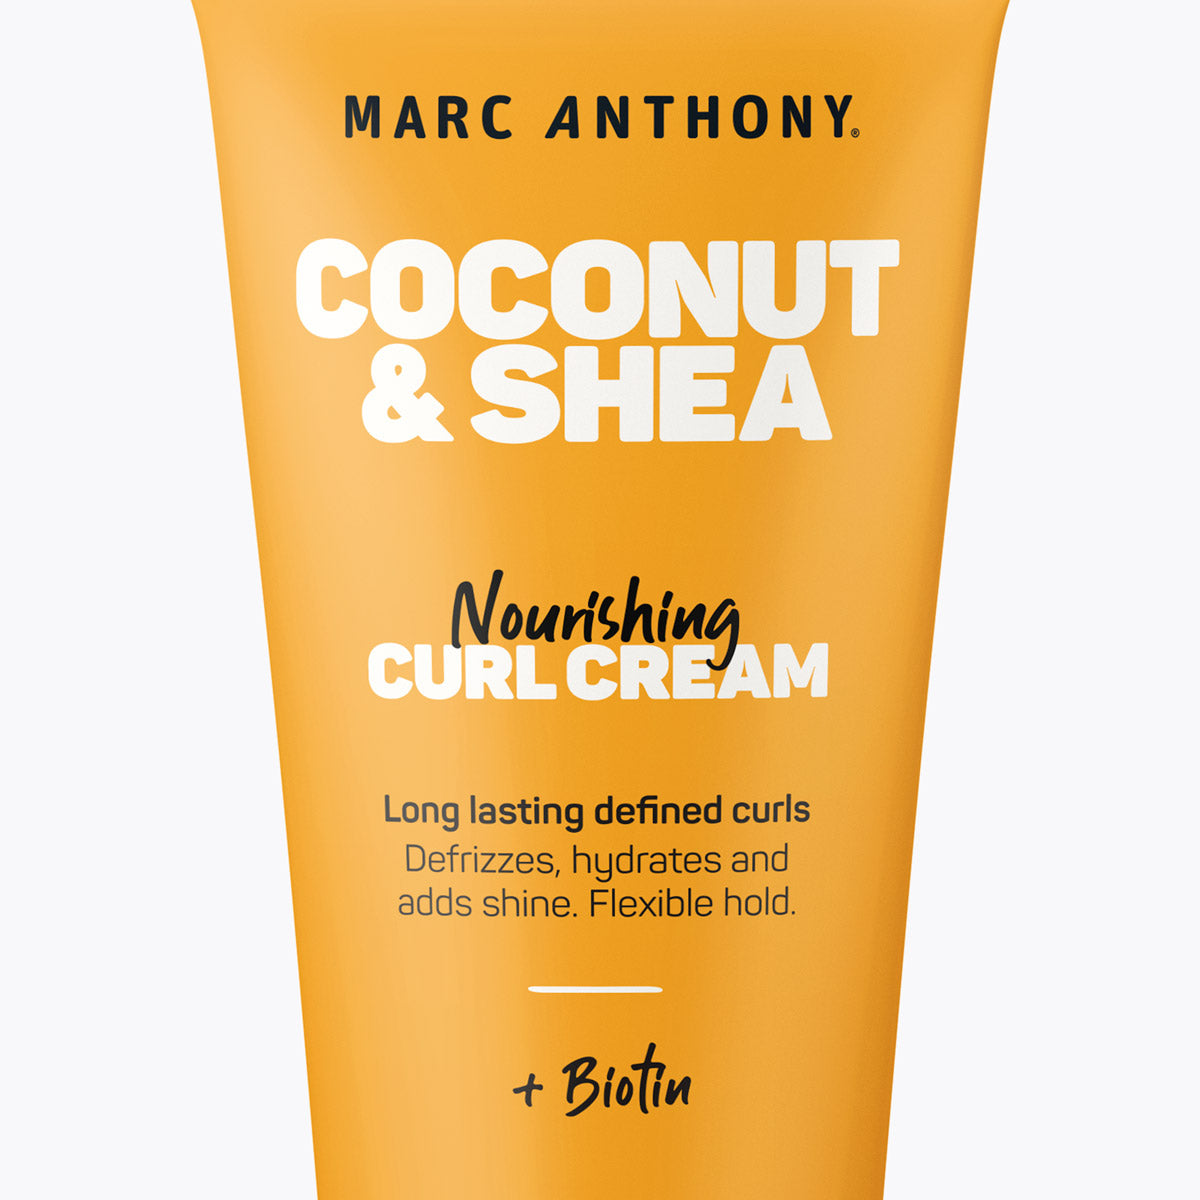 Coconut & Shea <br> Nourishing Curl Cream